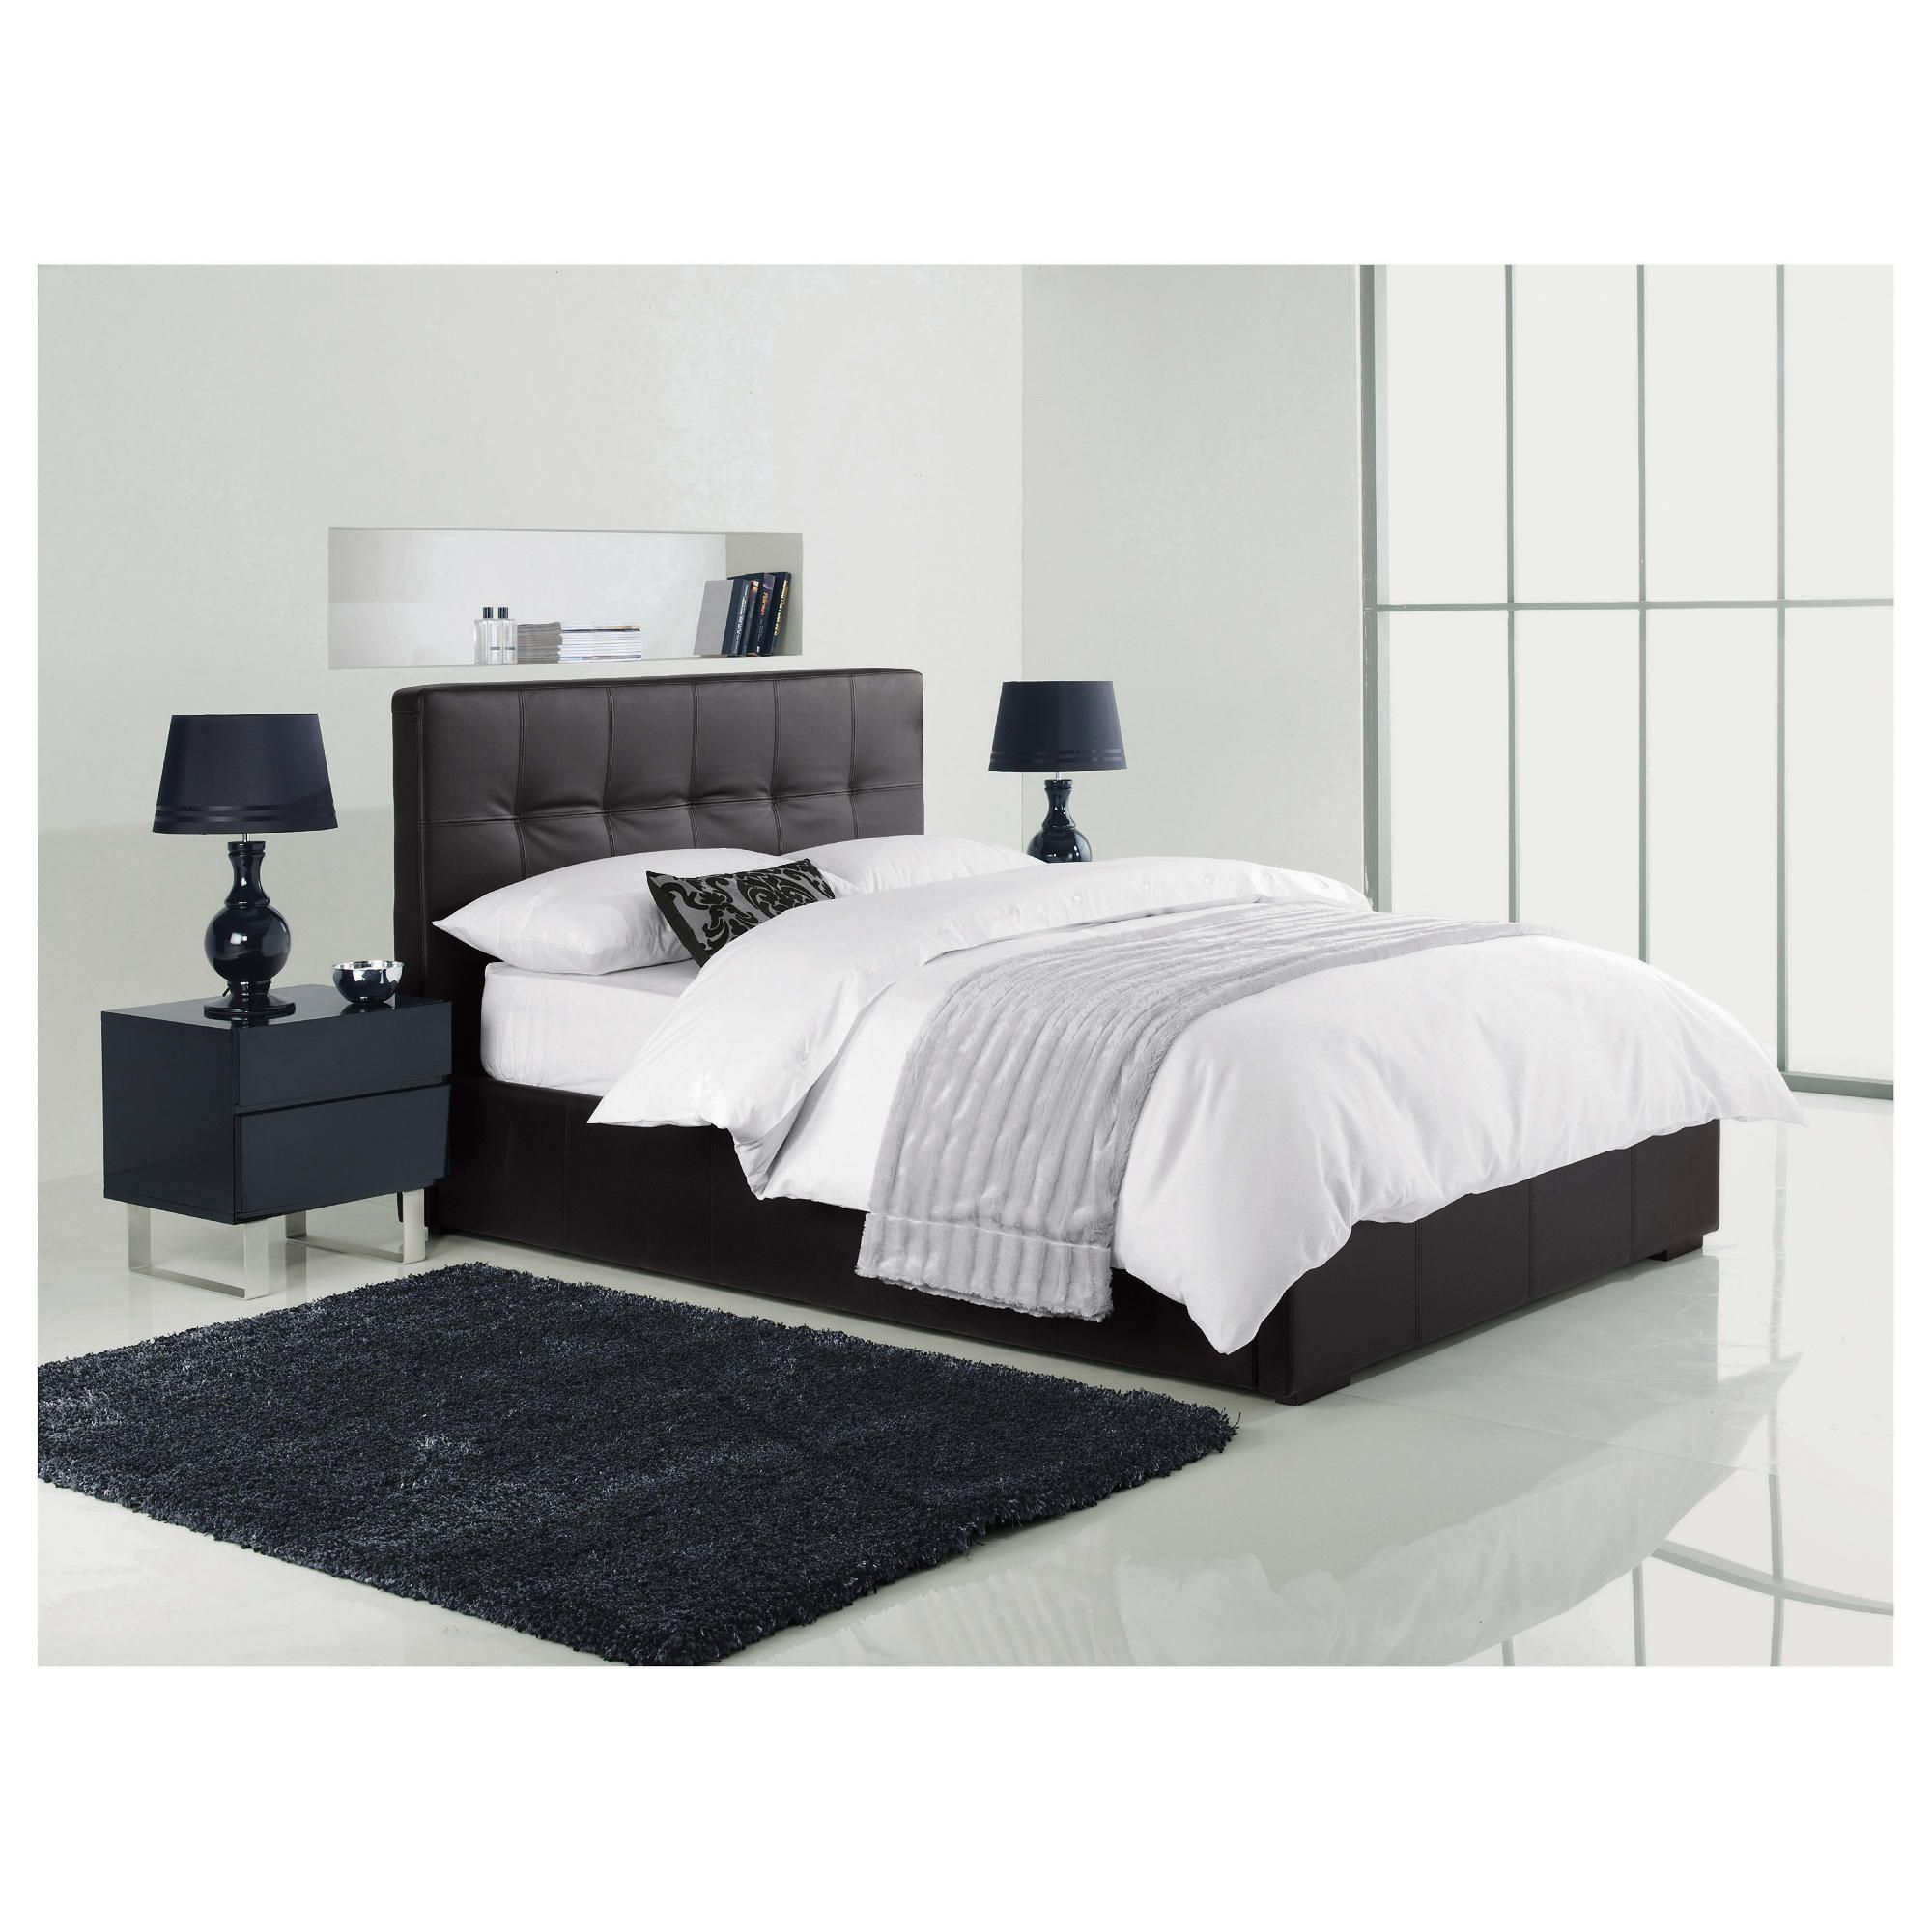 Orleans King Faux Leather Storage Bed, Black at Tescos Direct